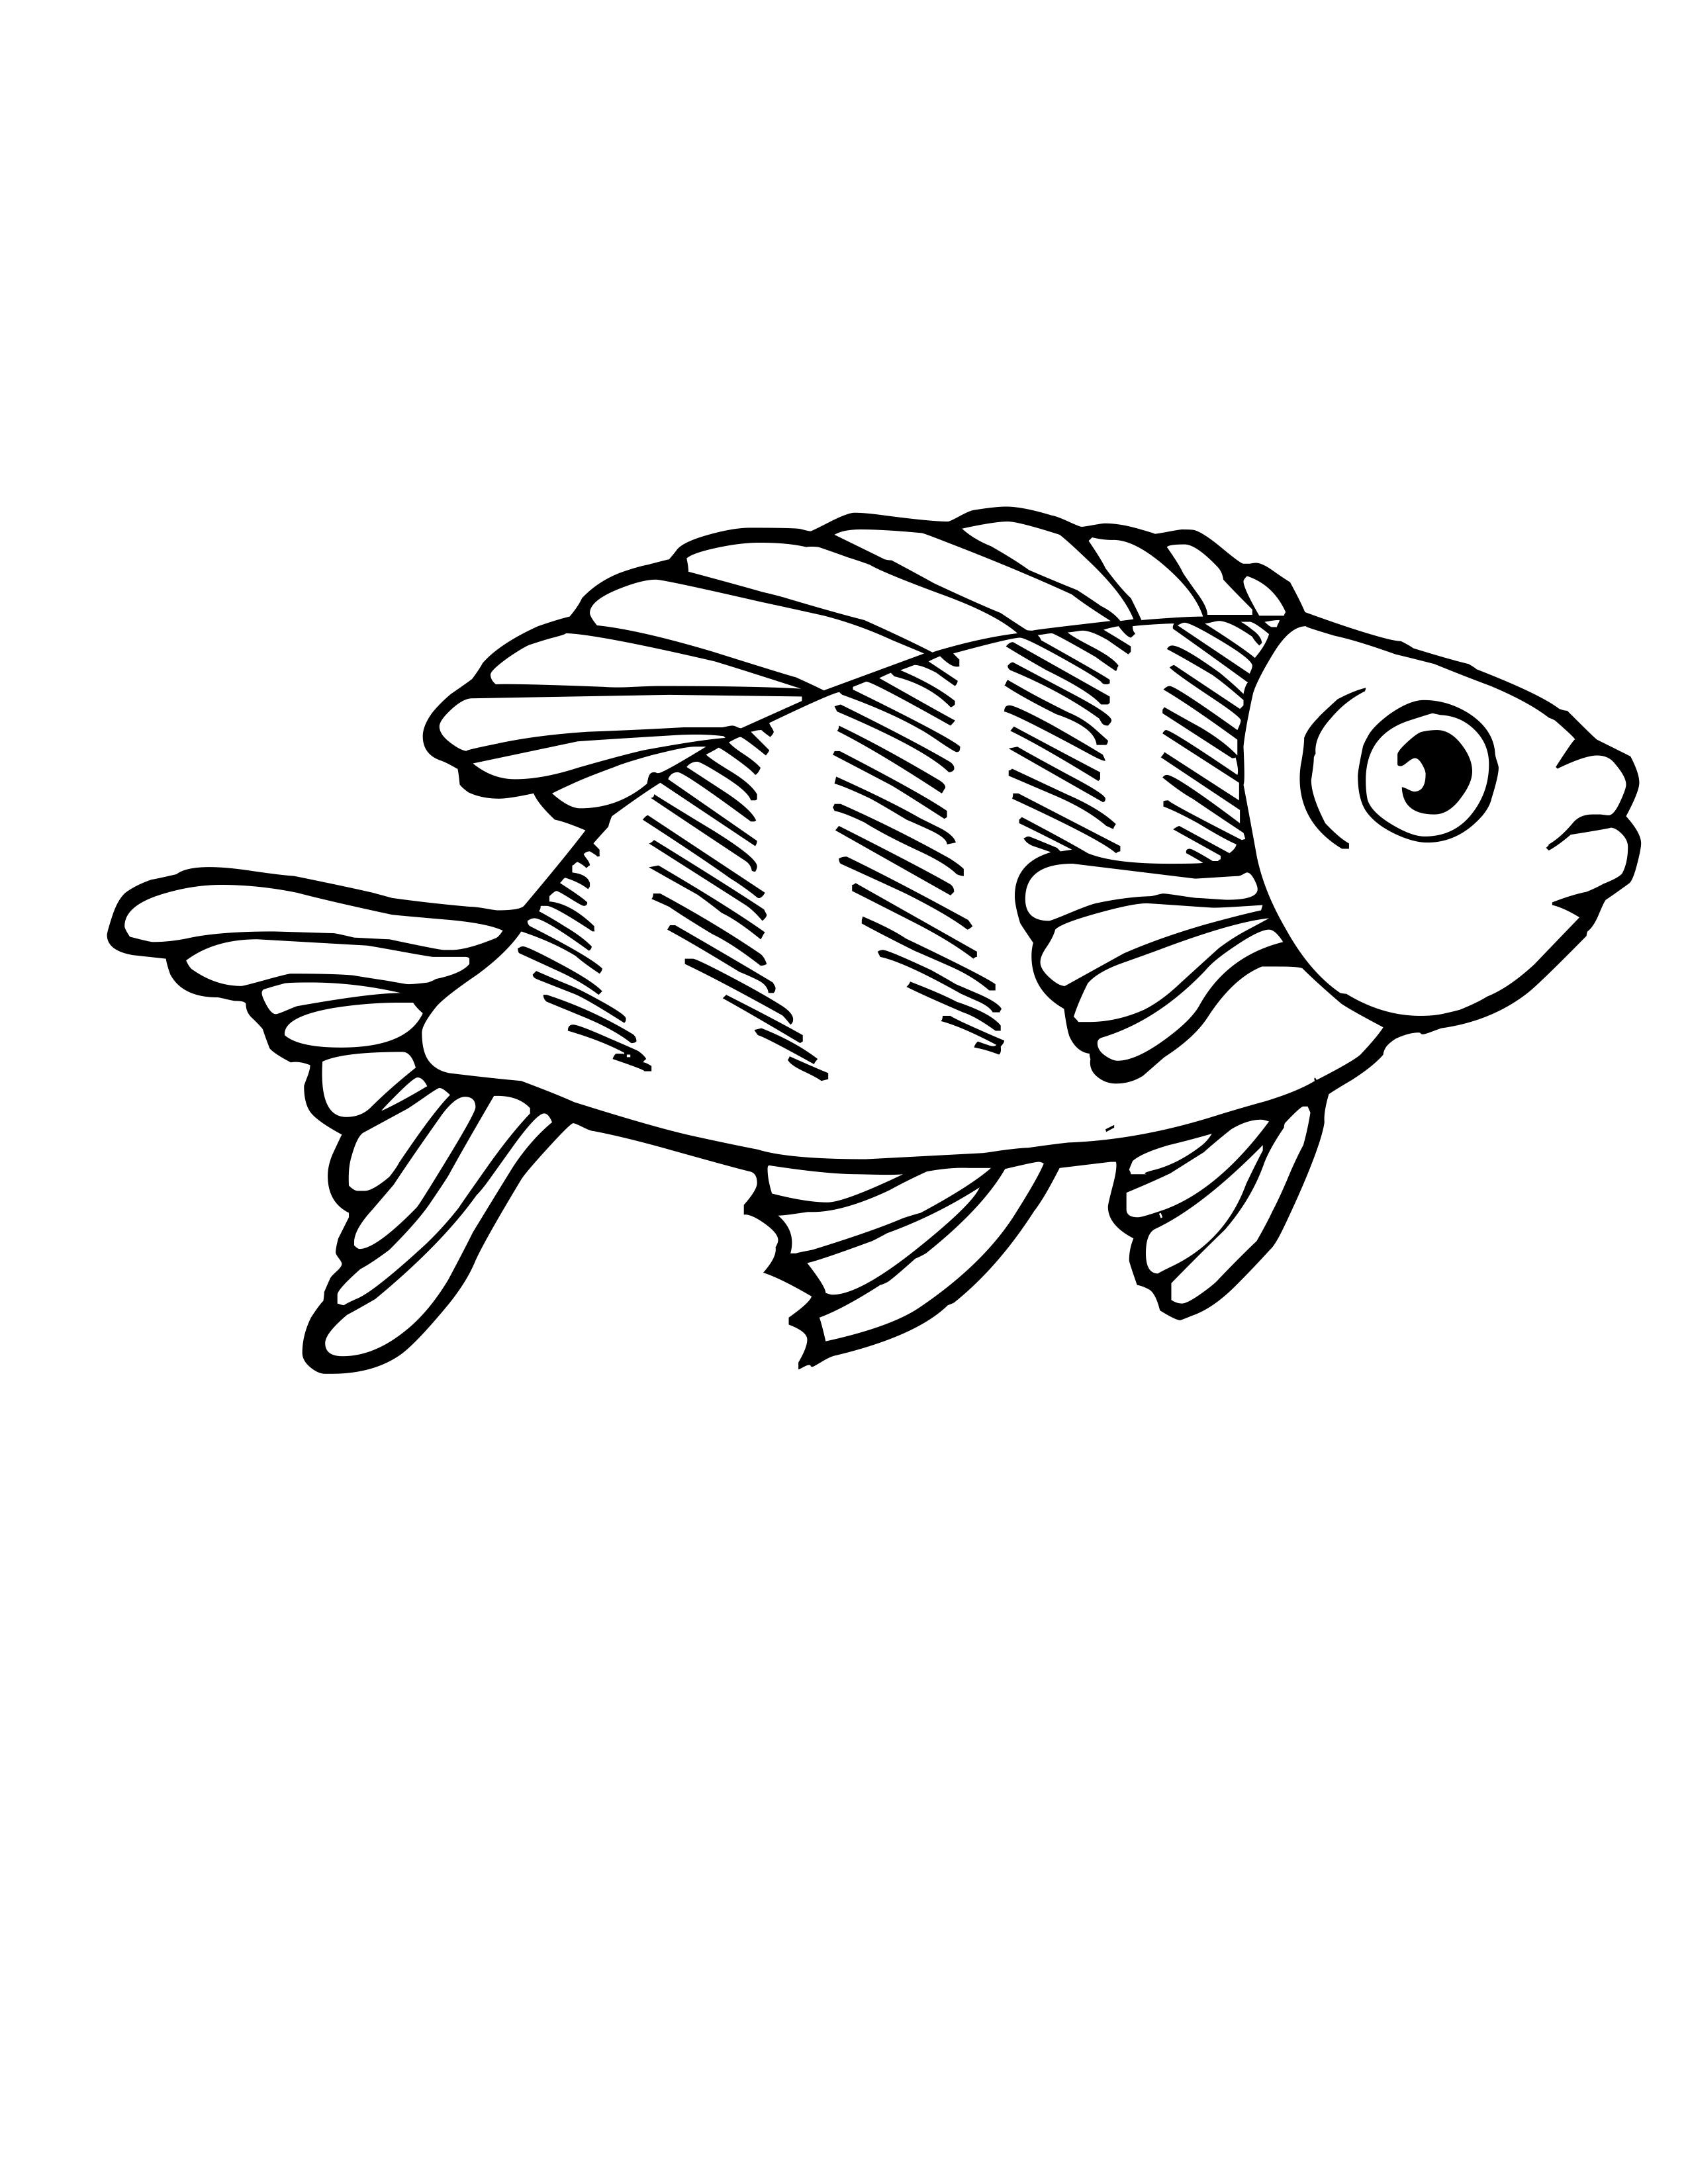 fish picture to color fish coloring page 2020 printable activity shelter color fish to picture